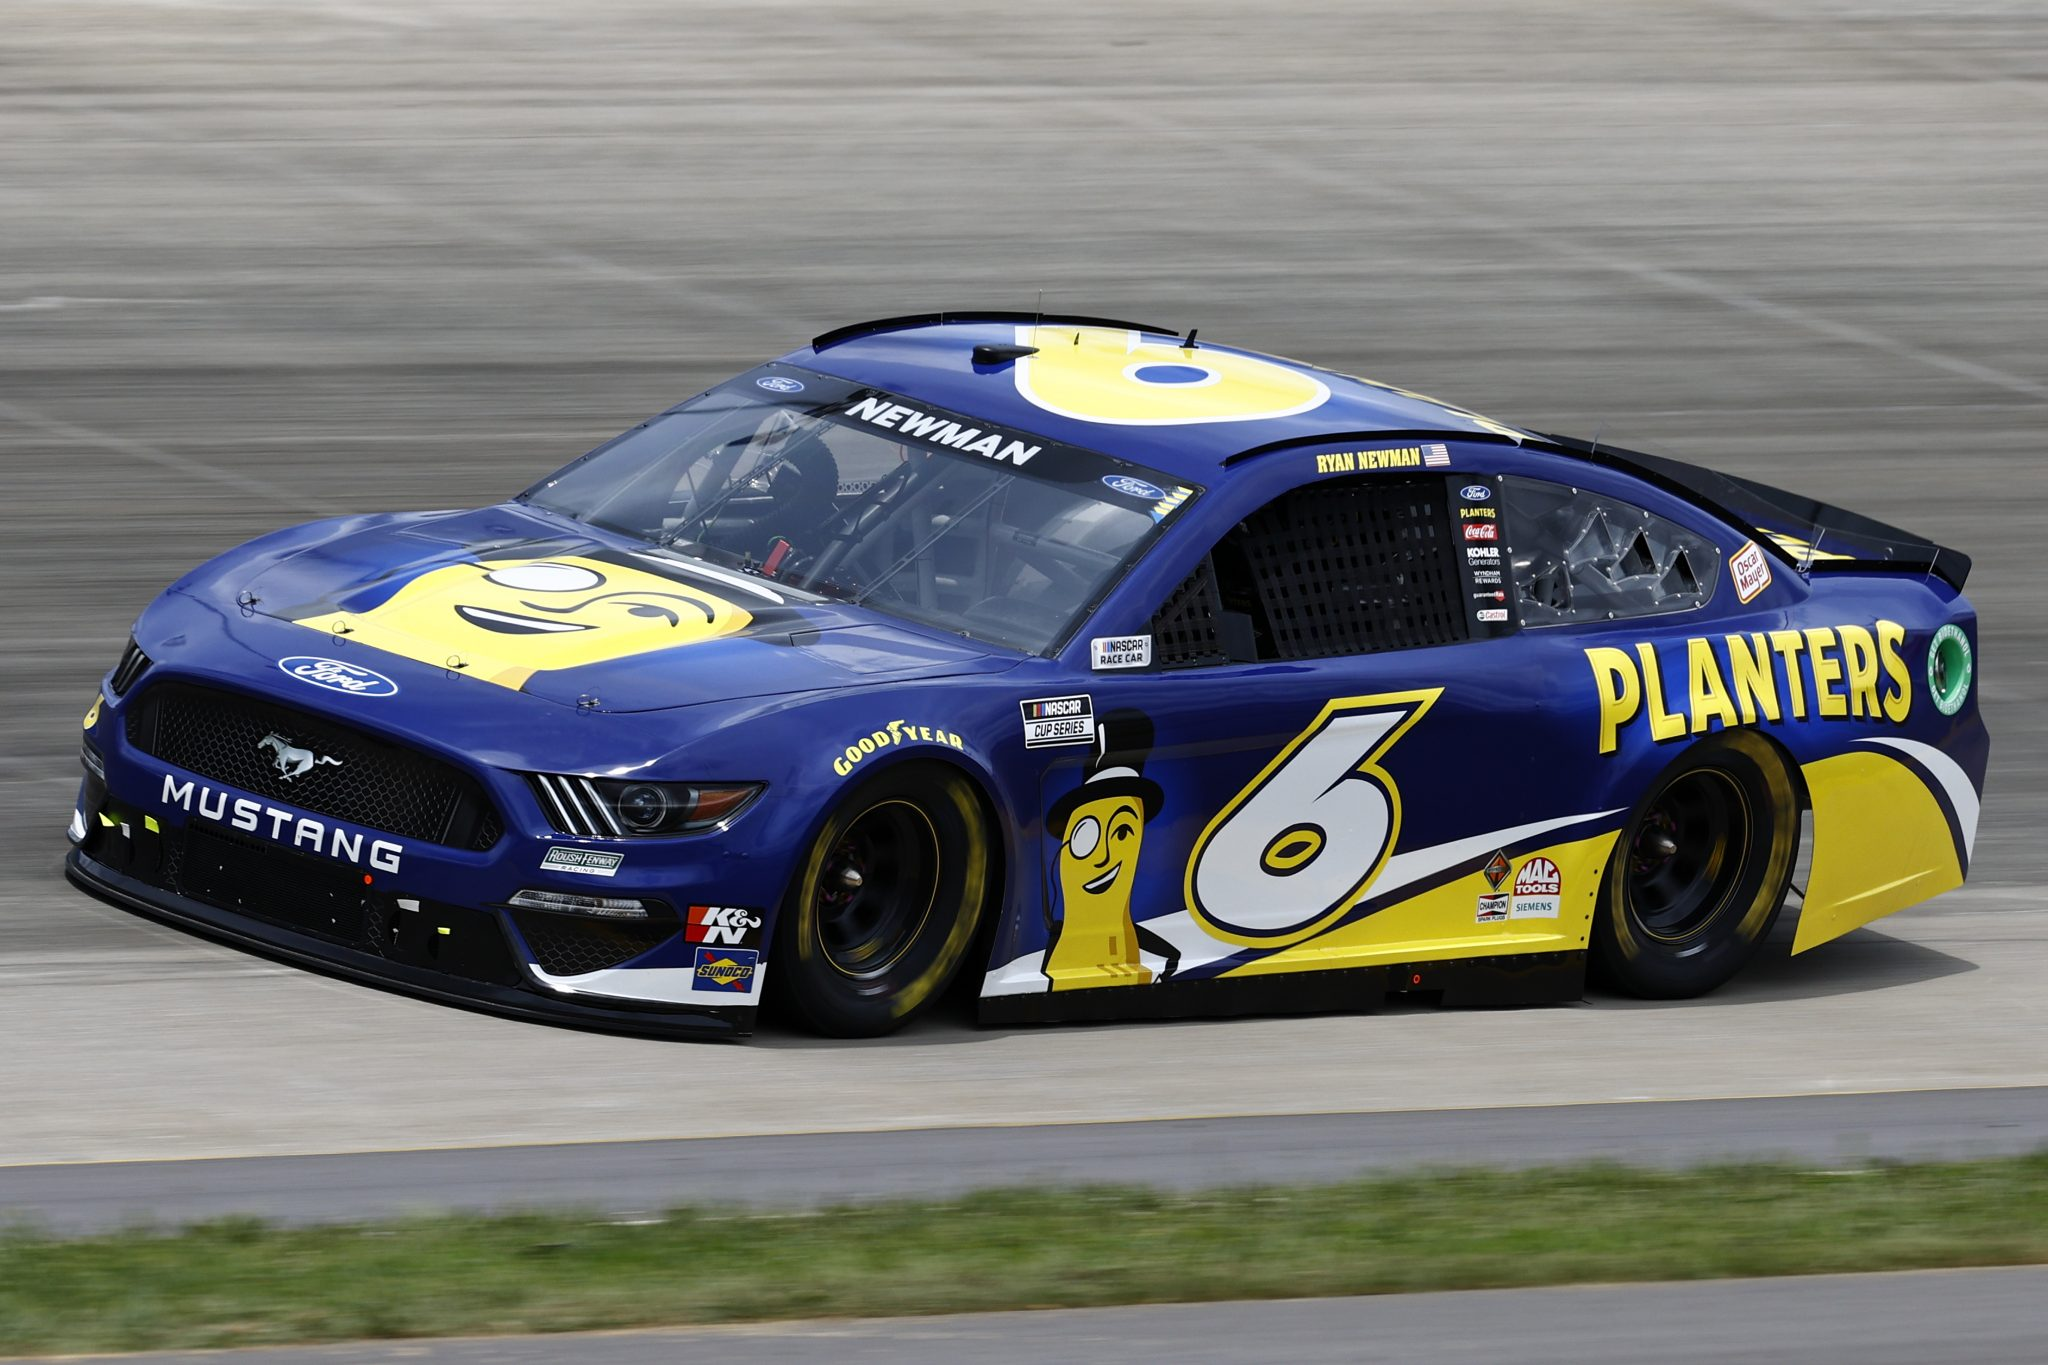 LEBANON, TENNESSEE - JUNE 19: Ryan Newman, driver of the #6 Planters Ford, drives during practice for the NASCAR Cup Series Ally 400 at Nashville Superspeedway on June 19, 2021 in Lebanon, Tennessee. (Photo by Jared C. Tilton/Getty Images) | Getty Images